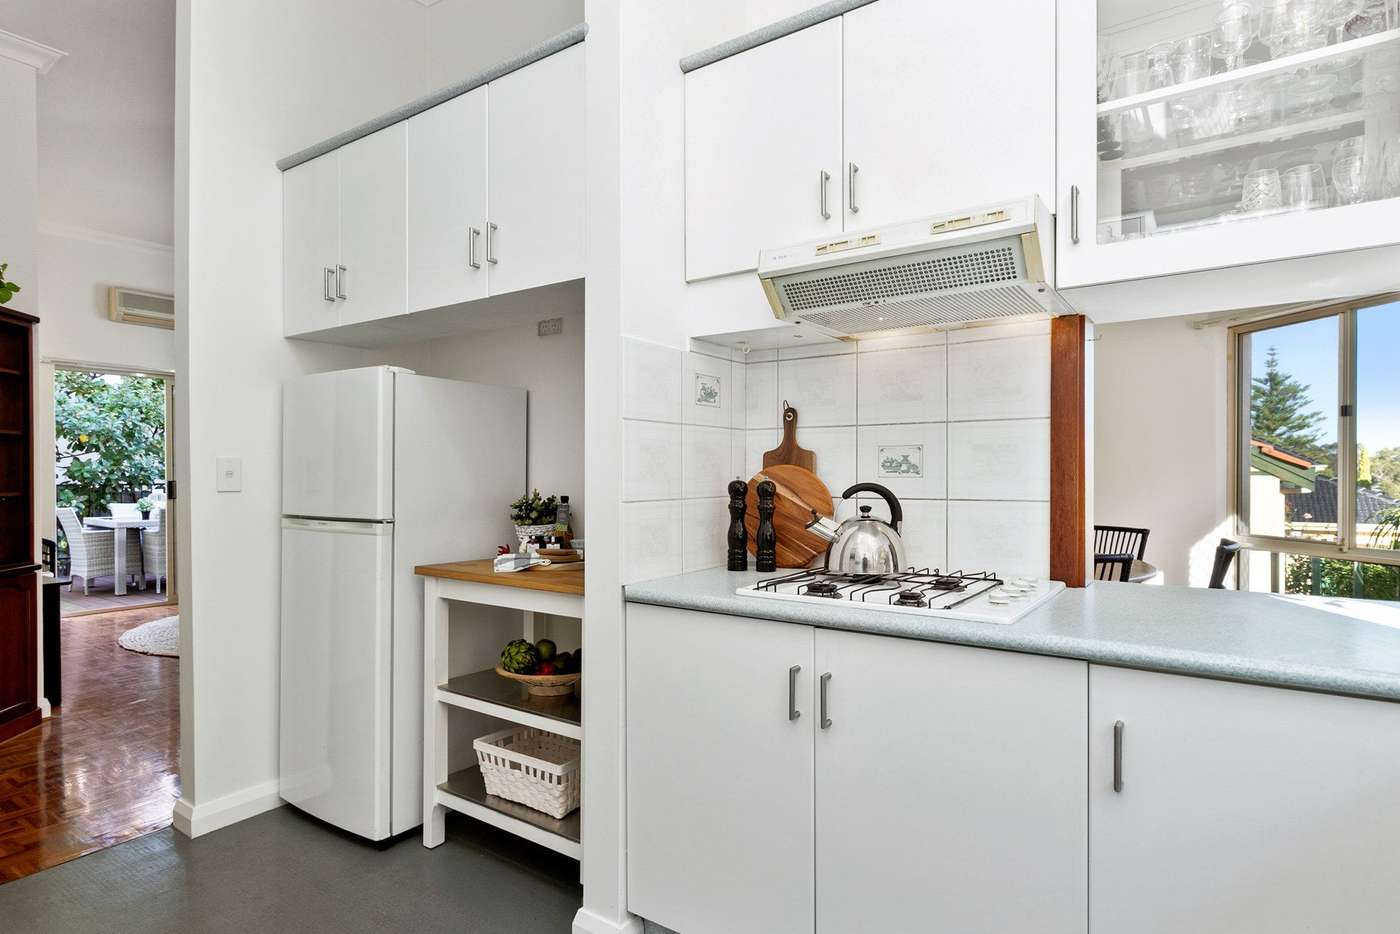 Fifth view of Homely house listing, 233 Nicholson Road, Shenton Park WA 6008